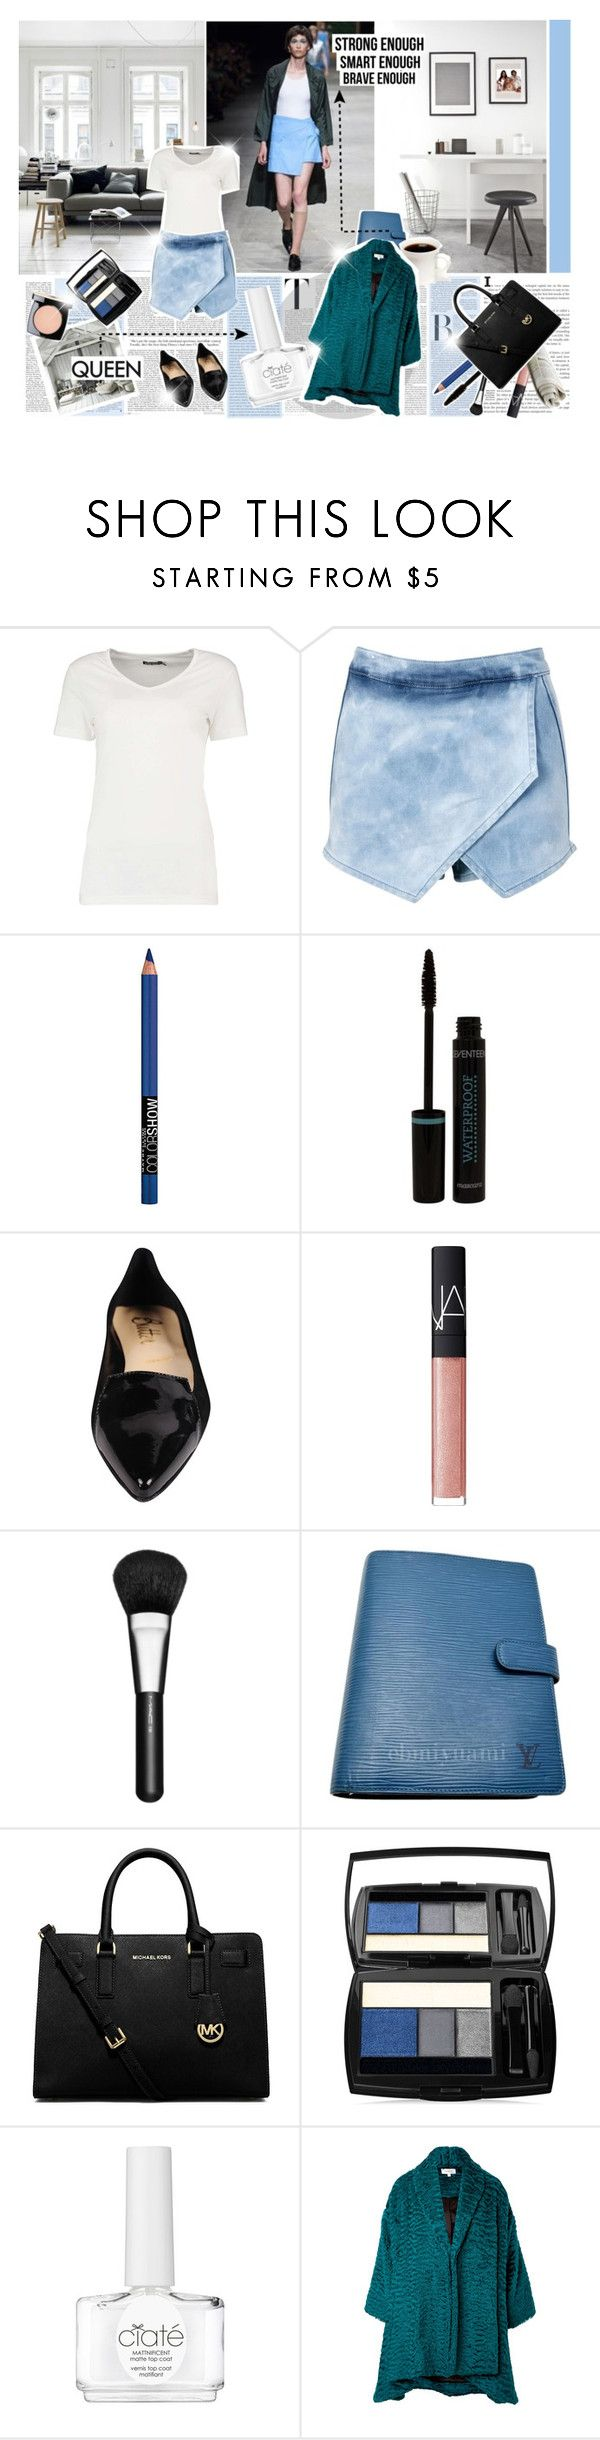 """All the women who are independent, throw your hands up at me"" by mrsochrasy ❤ liked on Polyvore featuring Arthur Arbesser, Oris, Boohoo, Maybelline, Butter Shoes, NARS Cosmetics, MAC Cosmetics, Louis Vuitton, MICHAEL Michael Kors and Lancôme"